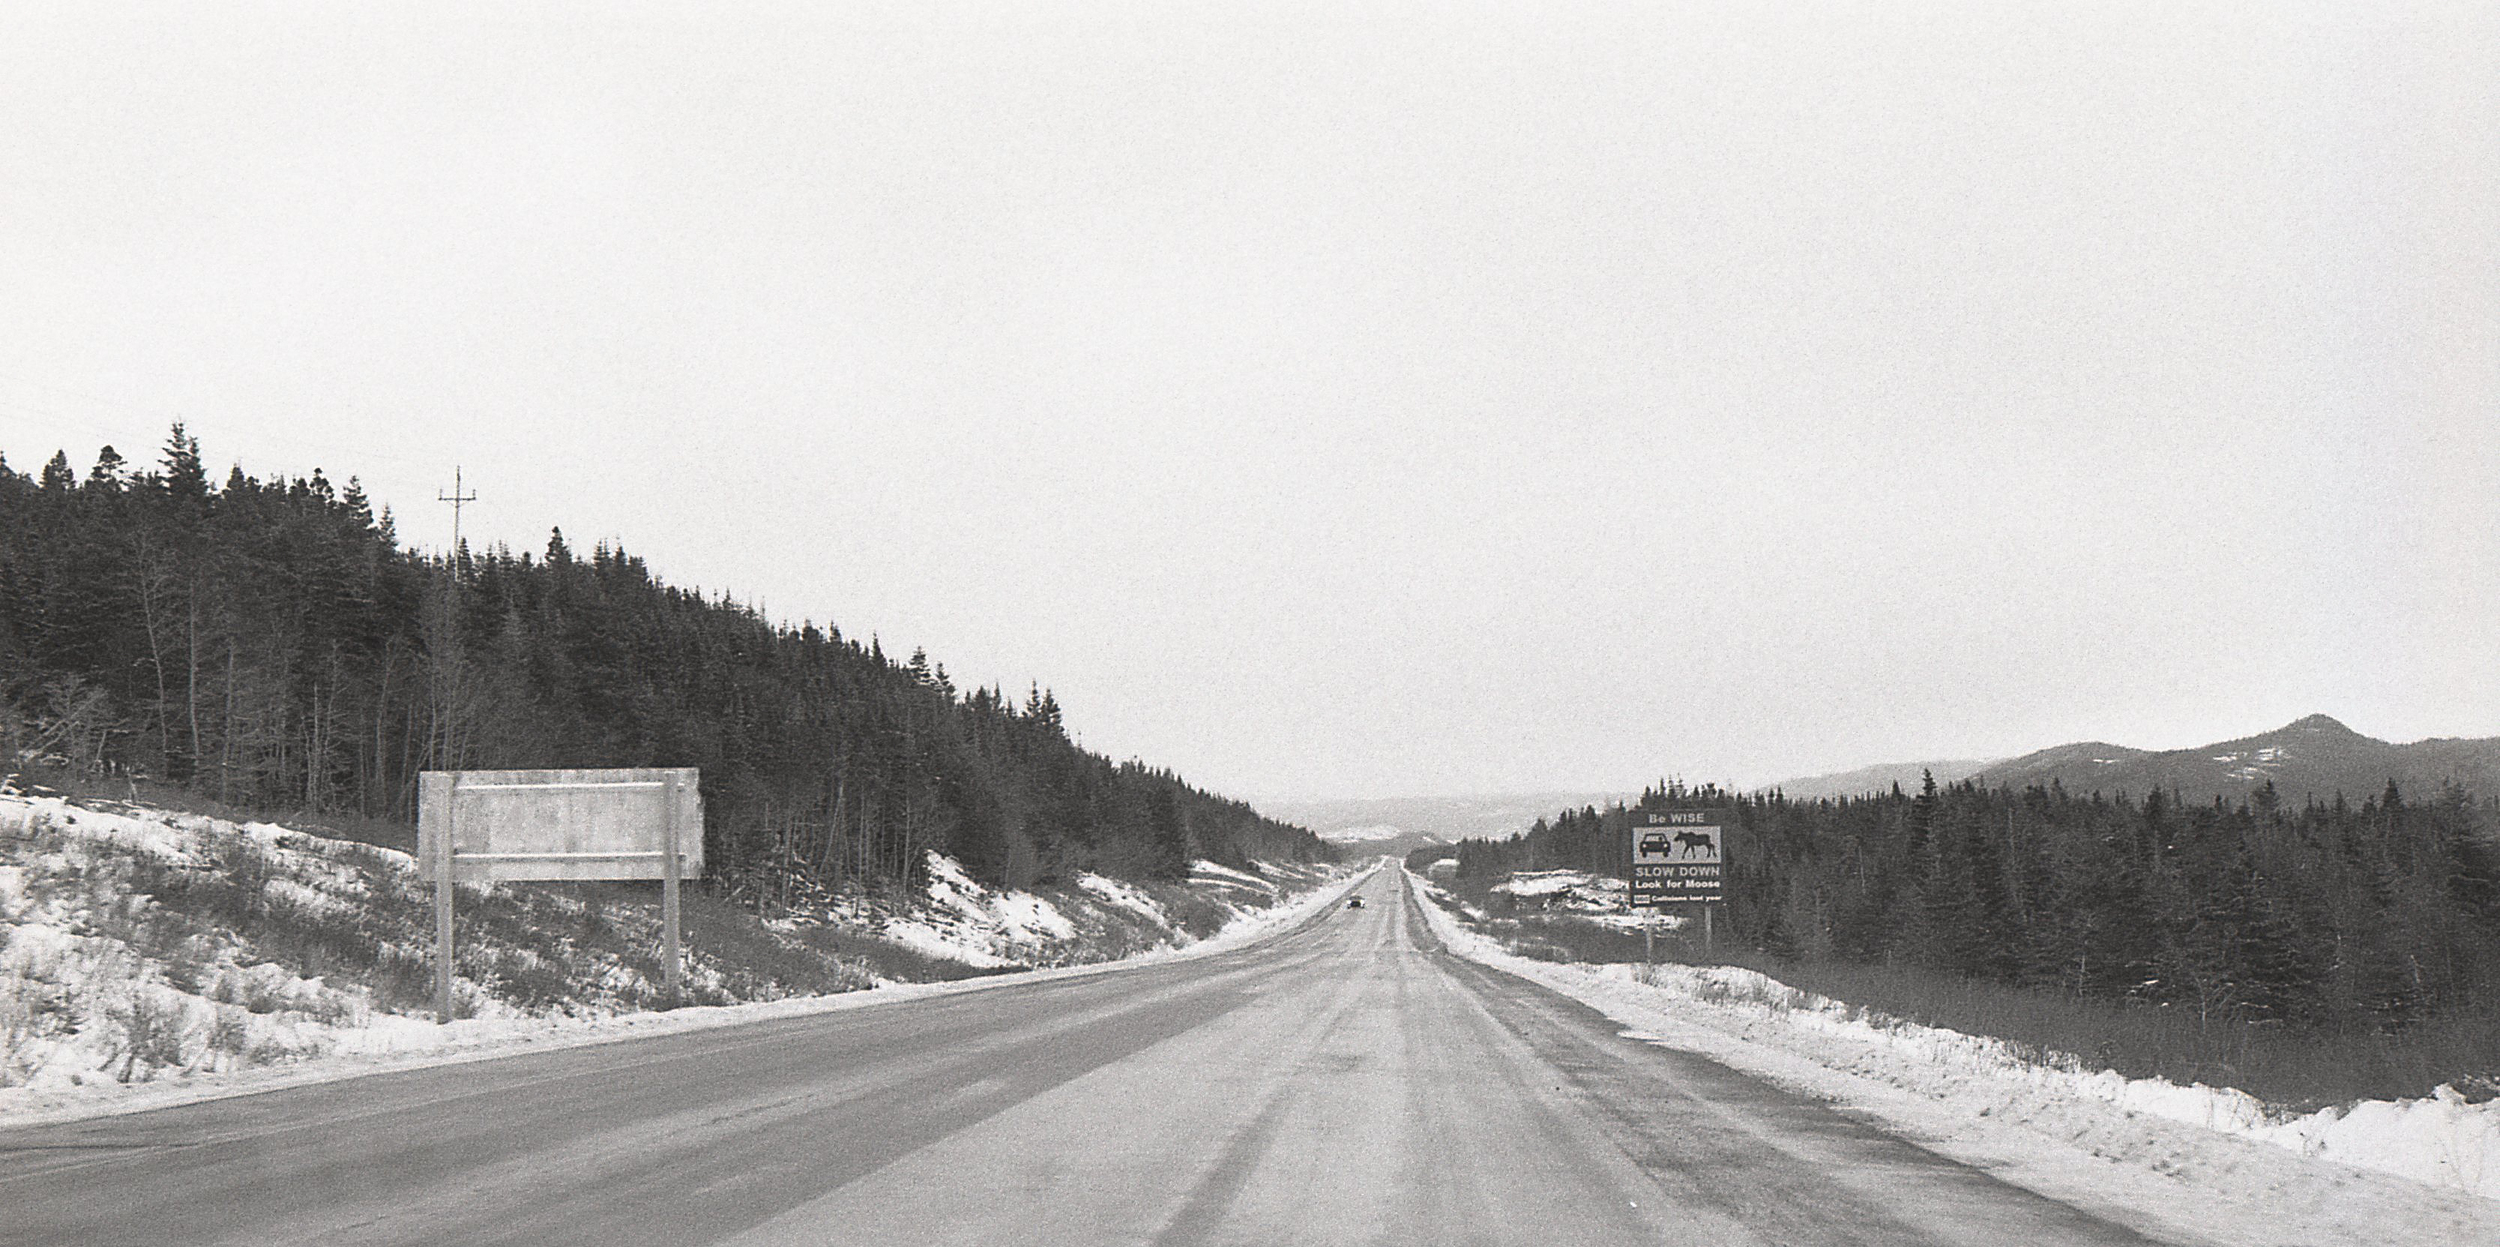 Heading to the airport. The sign on the right warms about moose, frequent visitors on local highways.